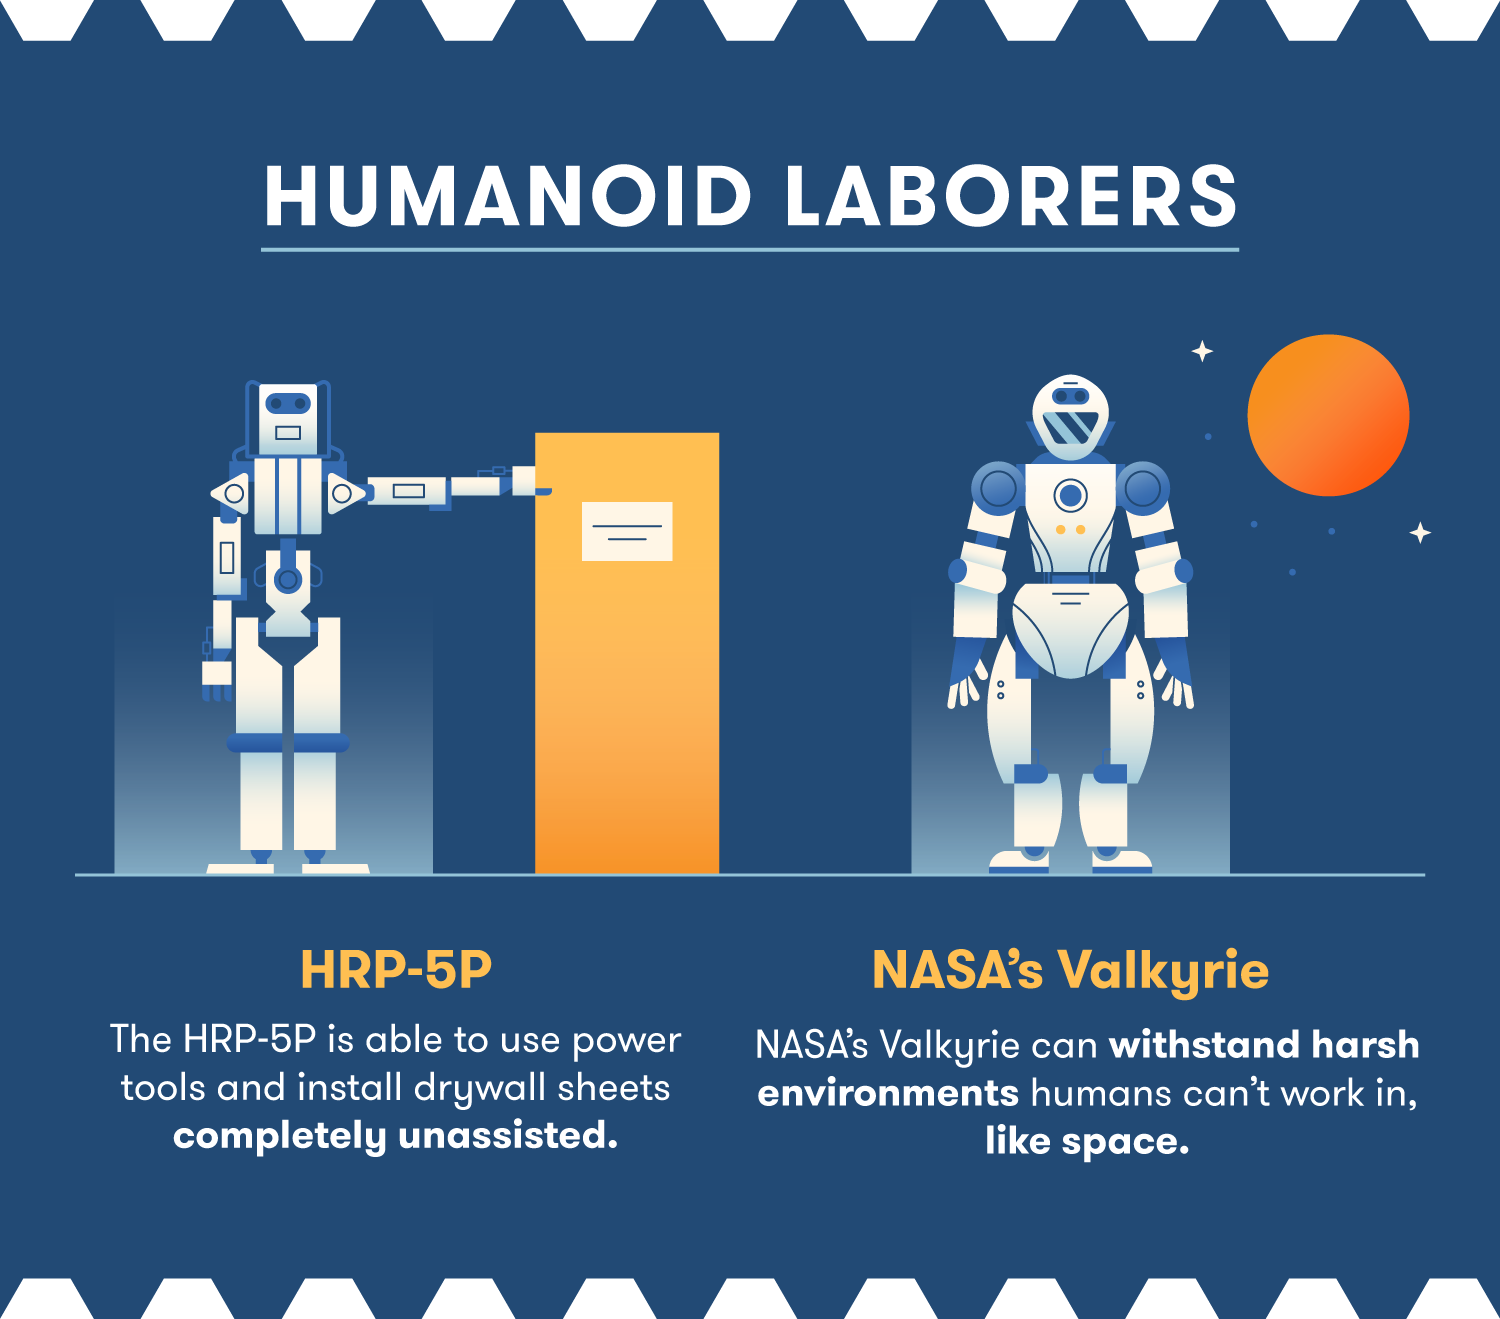 construction robots humanoid laborers